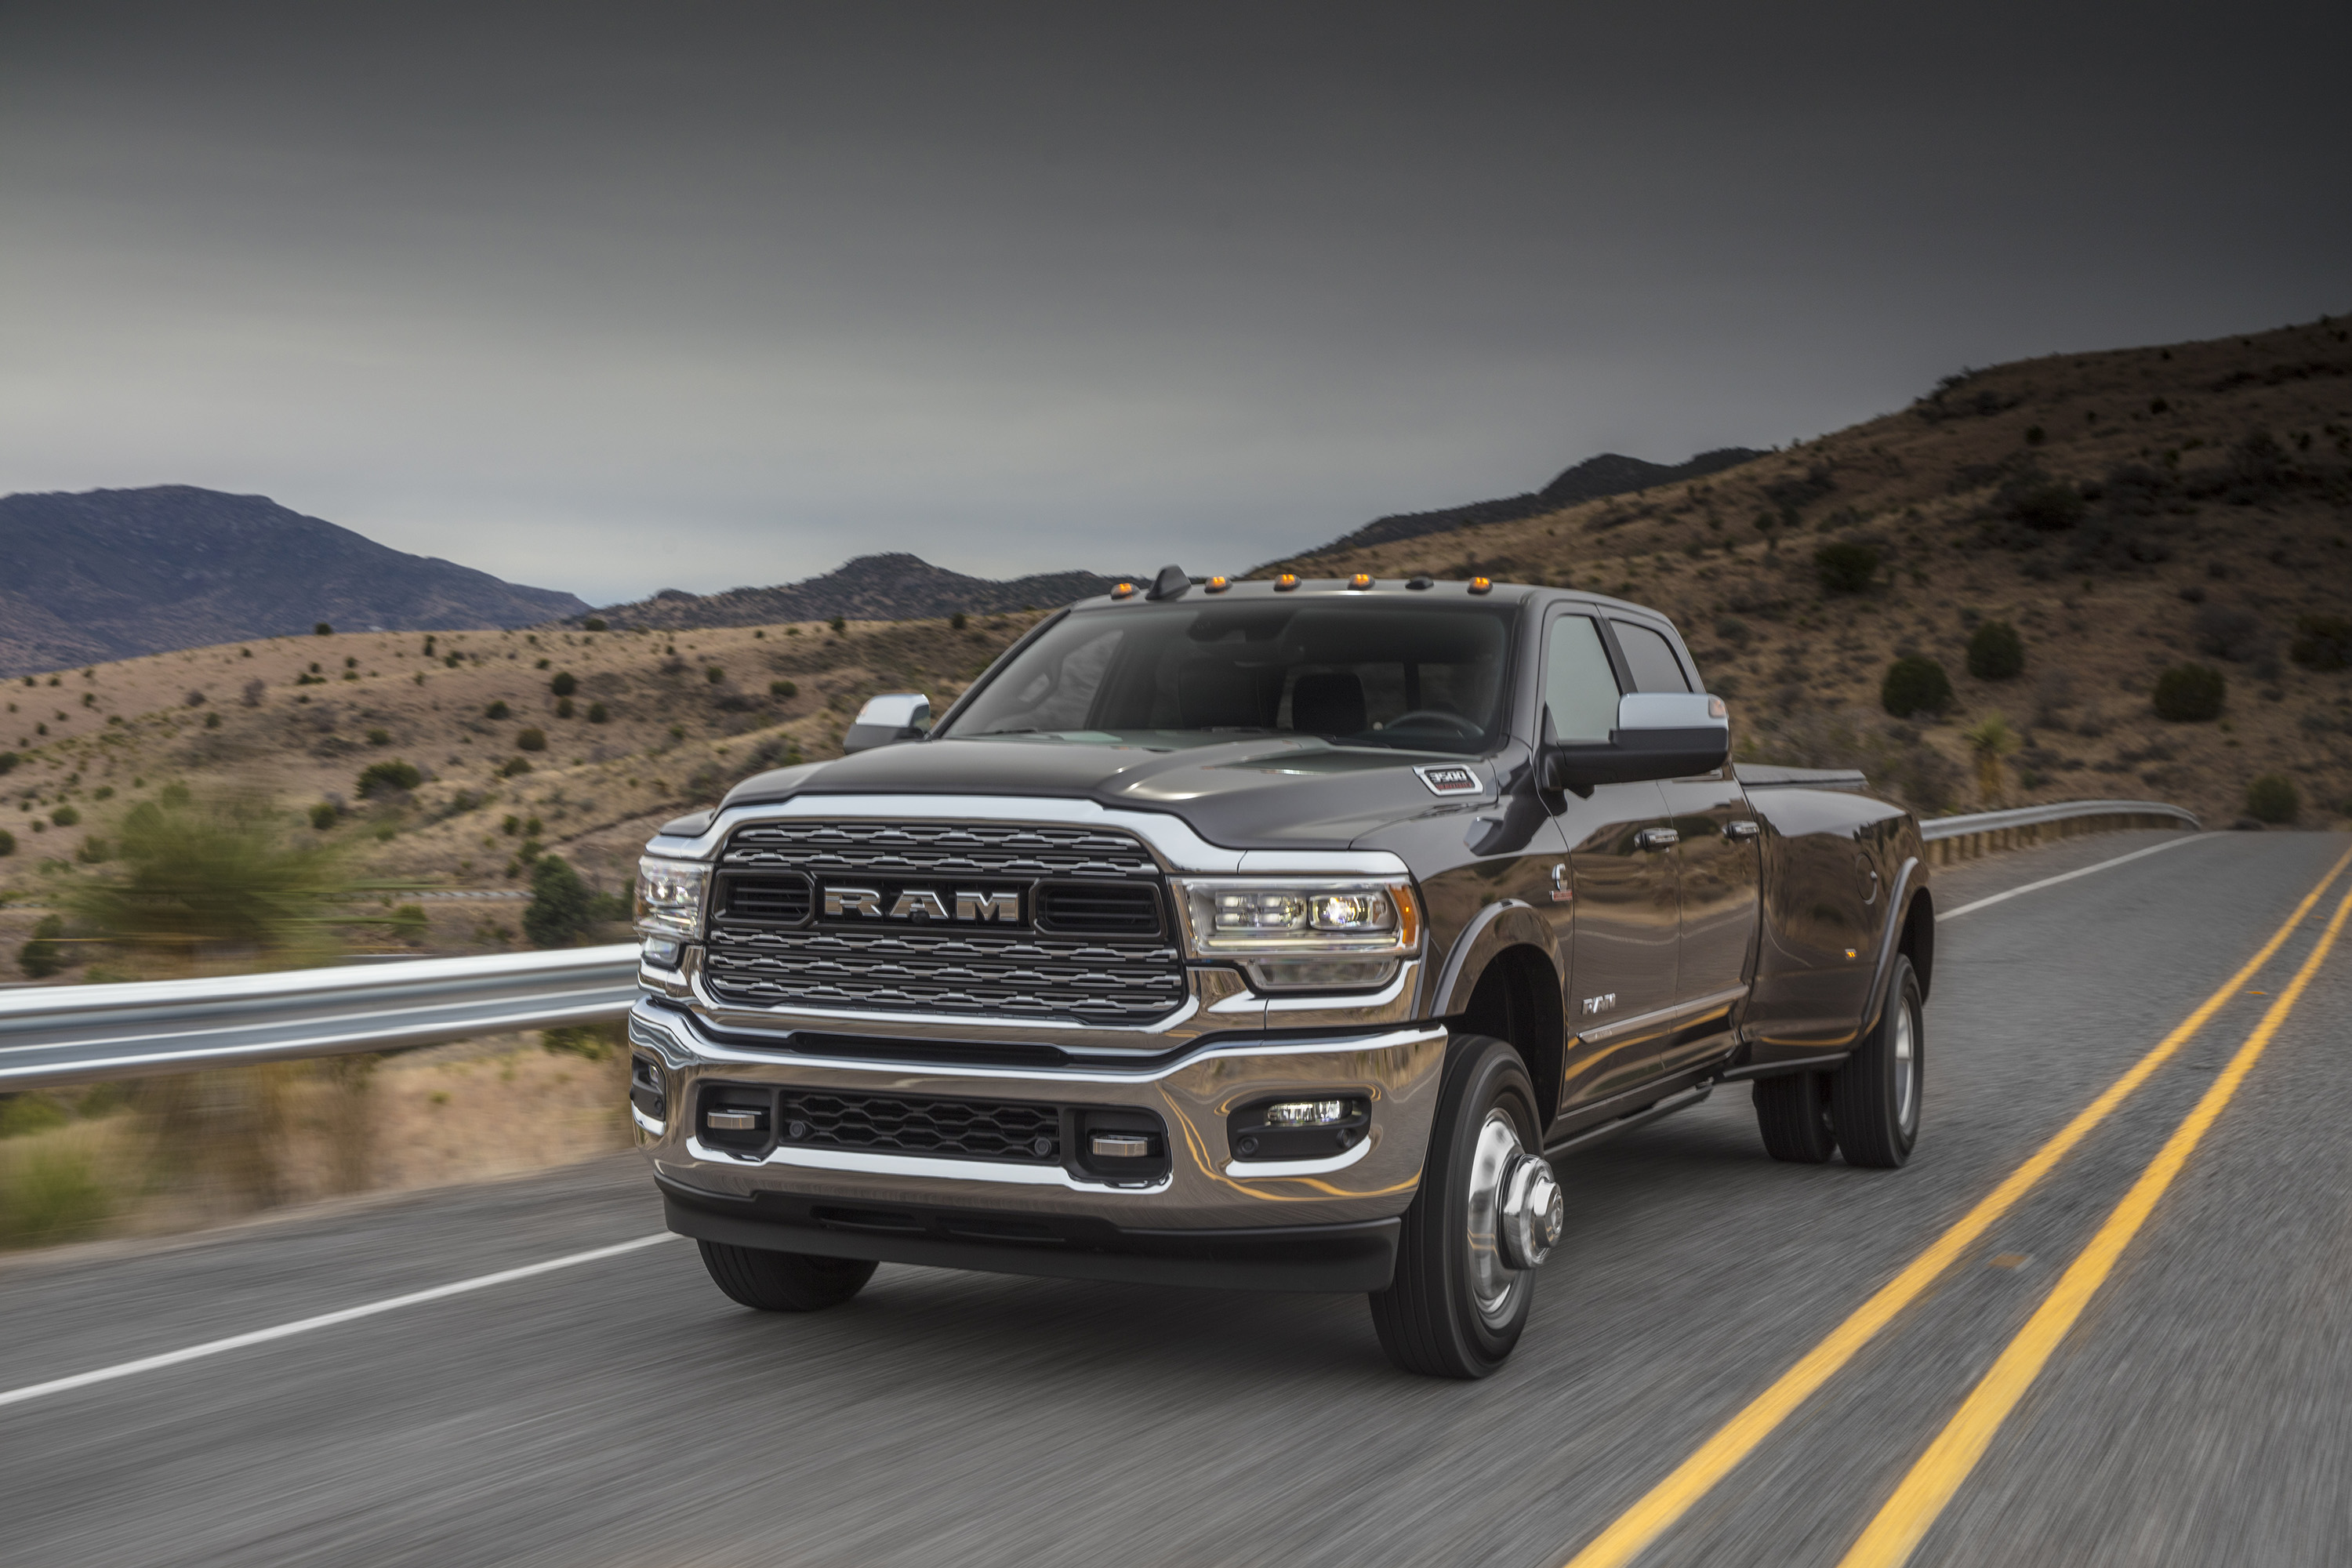 2019 Ram 3500 Heavy Duty Limited Crew Cab Dually Front Three-Quarter Wallpapers (1)